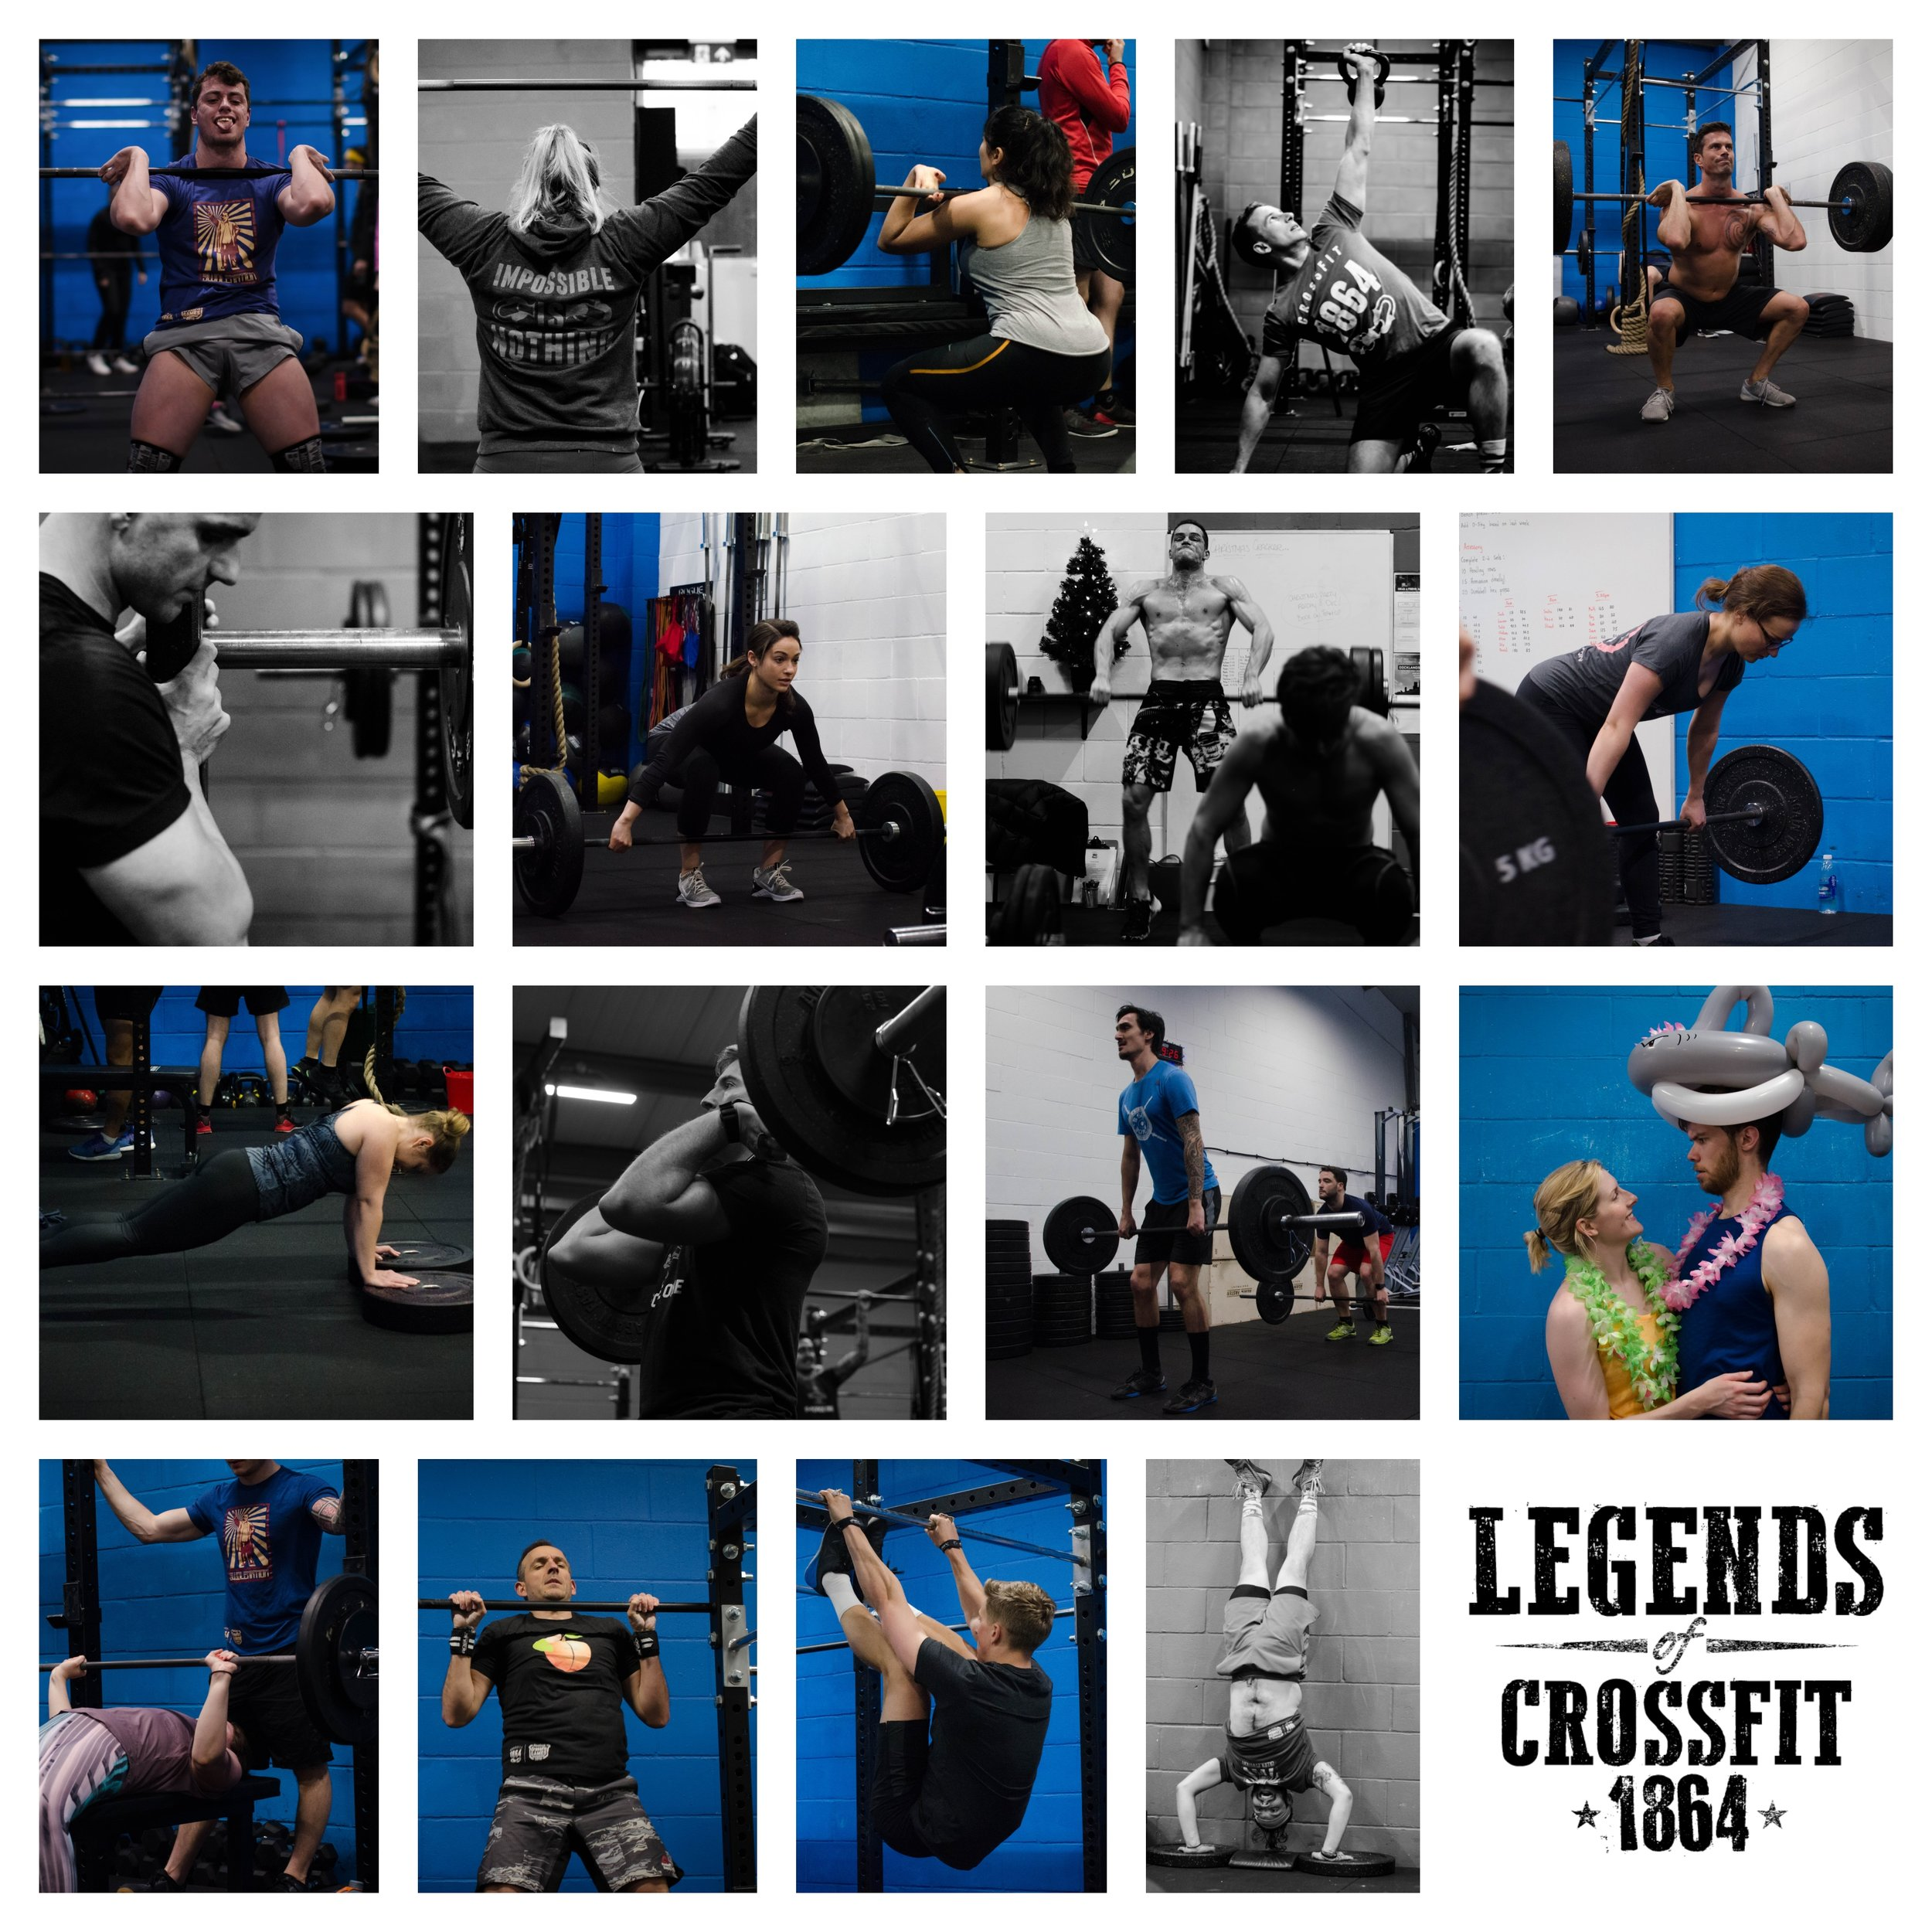 Here's to our Legends of CrossFit 1864!